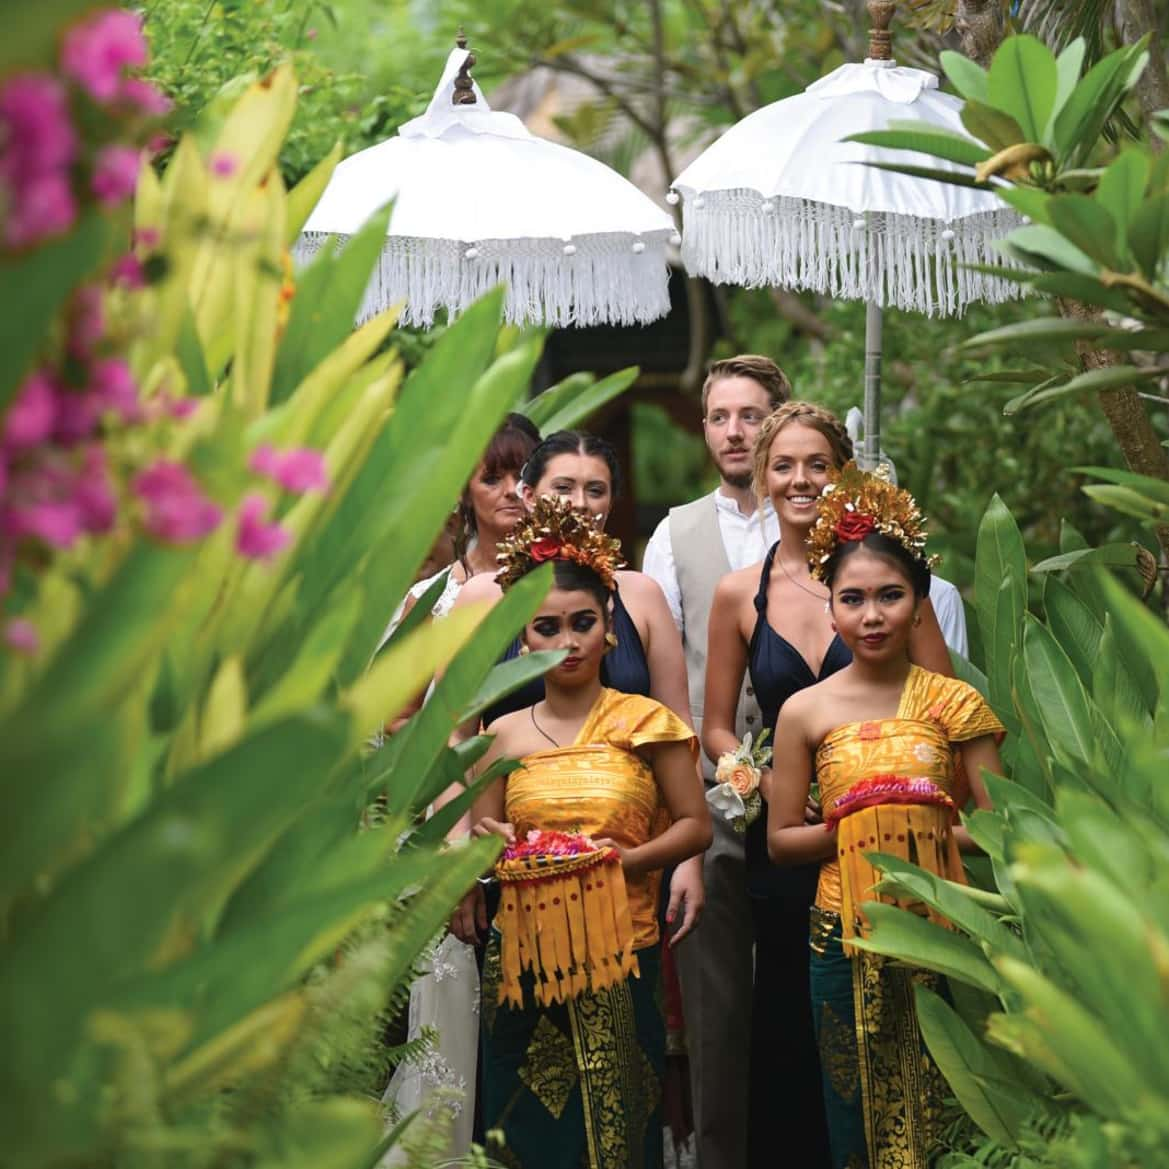 Intimate island wedding - The Pavilions Bali